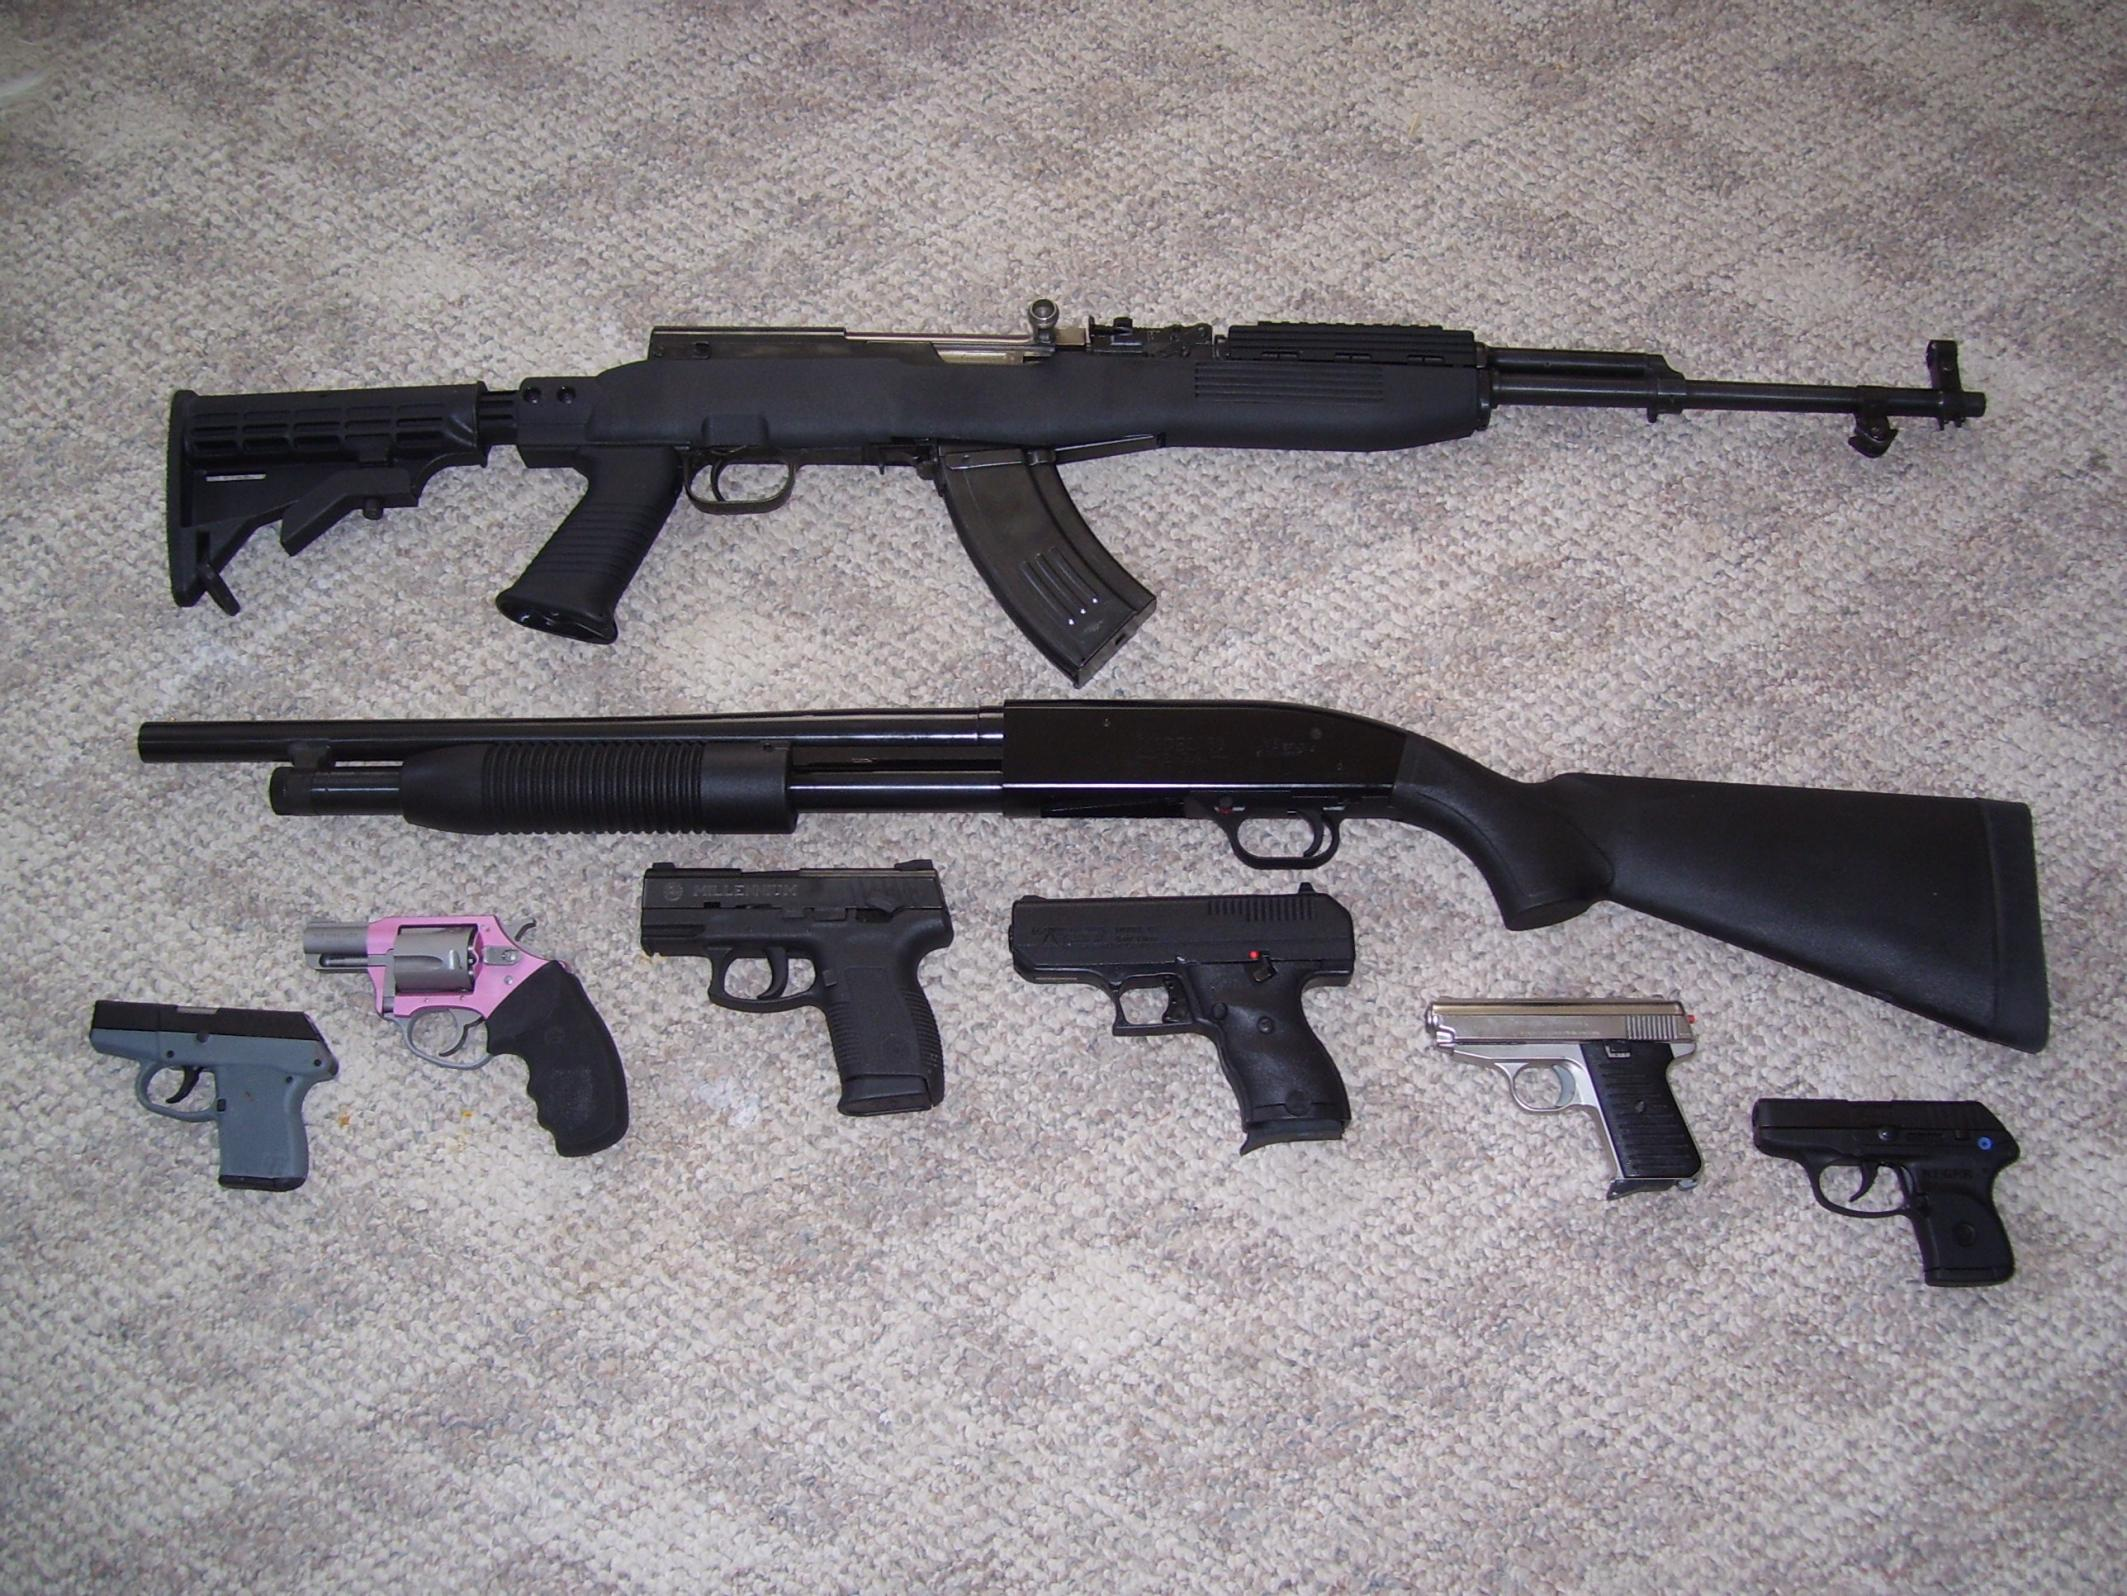 Pics of some of me and wifeys toys.-savannah-20picture-20556-1-.jpg